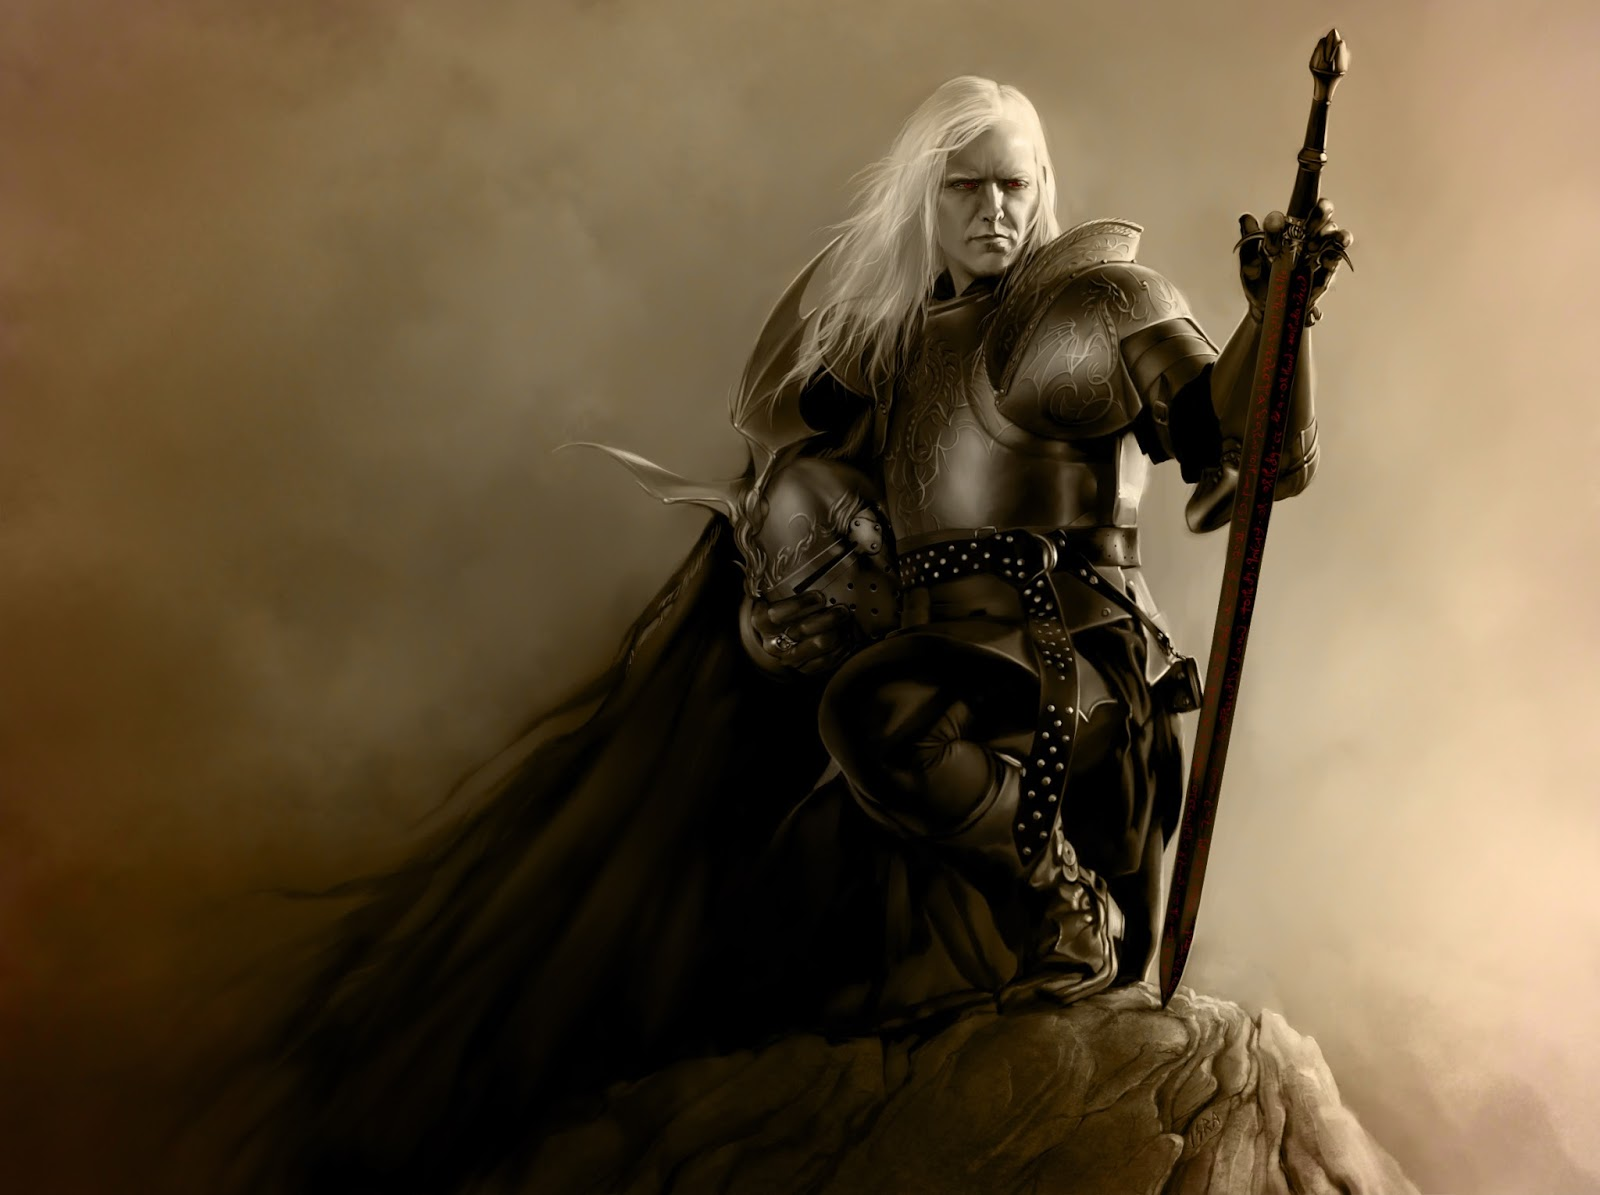 The Wertzone  A History of Epic Fantasy   Part 6 Sword and sorcery and epic fantasy are distinct subgenres  although sharing  some similarities  and both can be jointly referred to as secondary world